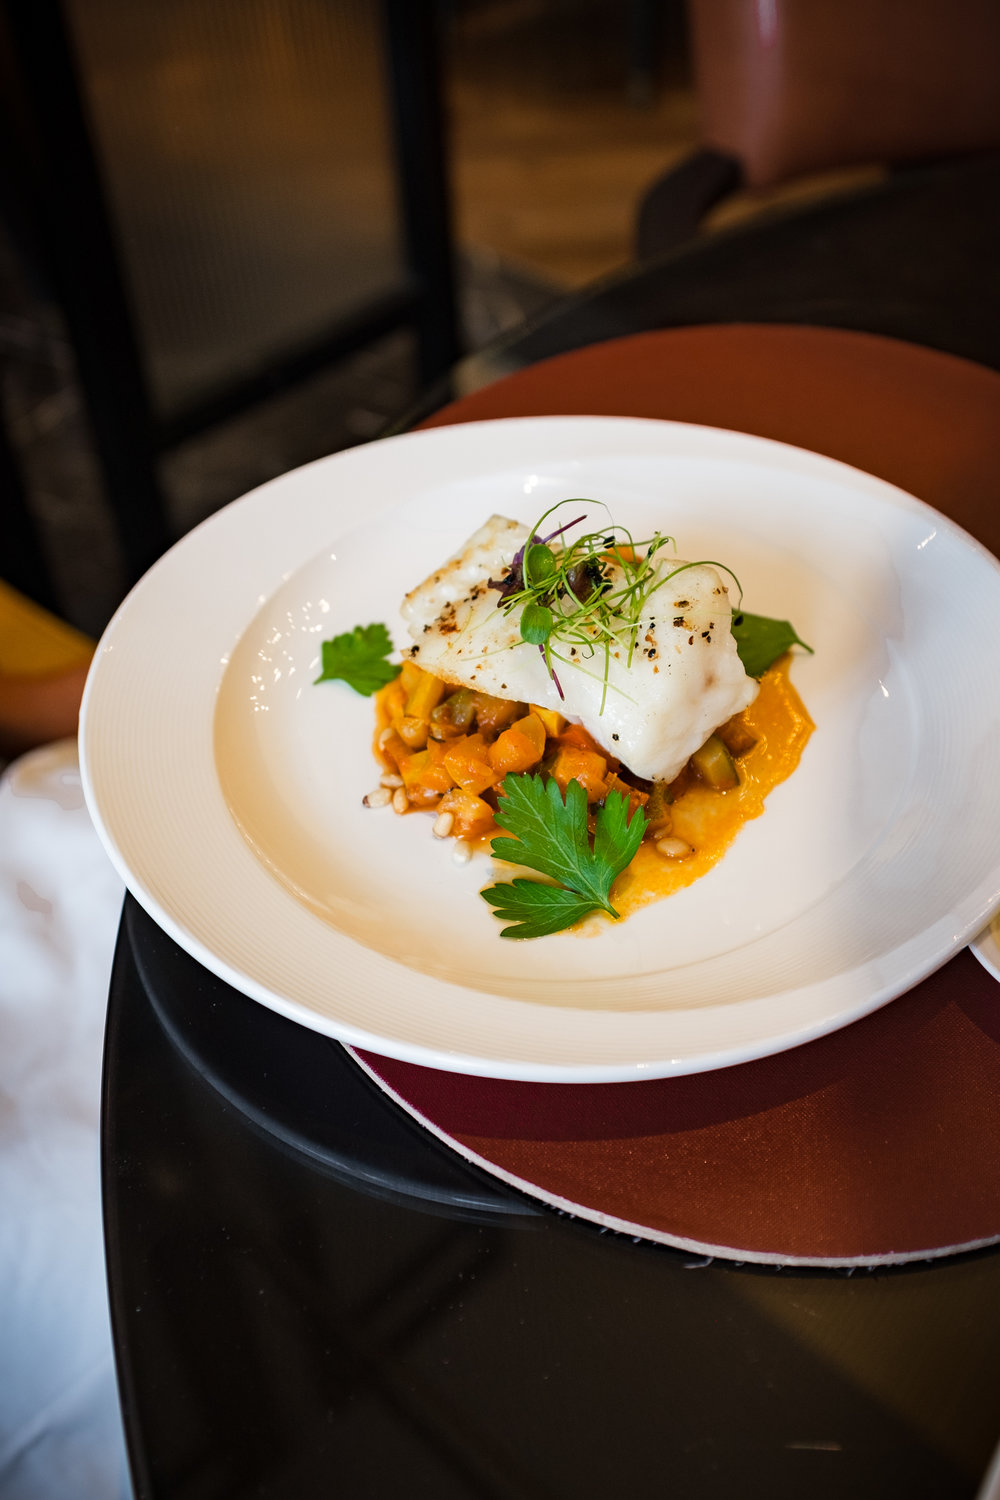 Cabillaud - Pan Roasted Black Cod Fillet With Ratatouille